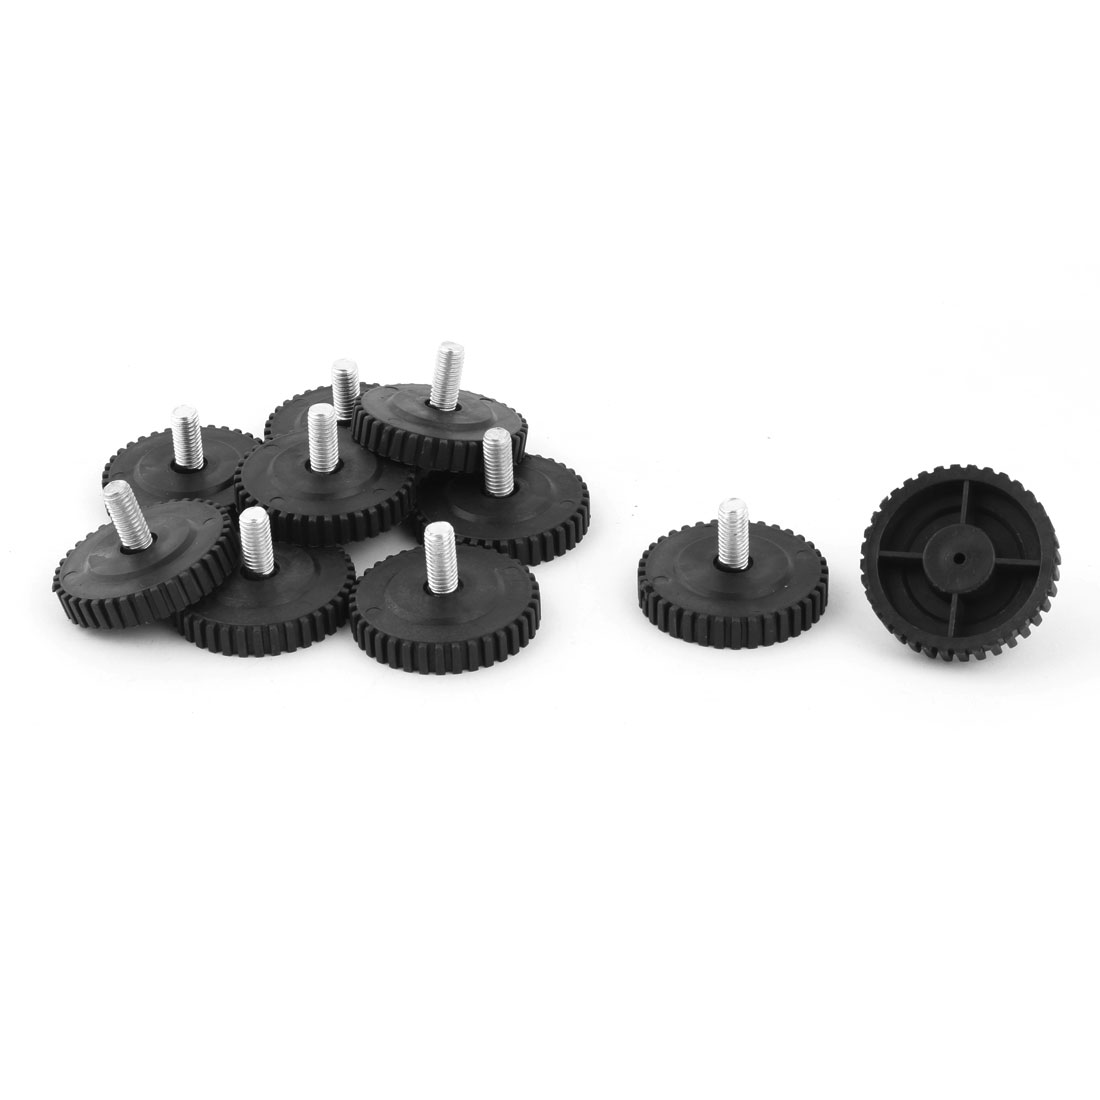 Home Round Skid Resistant Furniture Leg Protector Leveling Foot Nail Black 10pcs